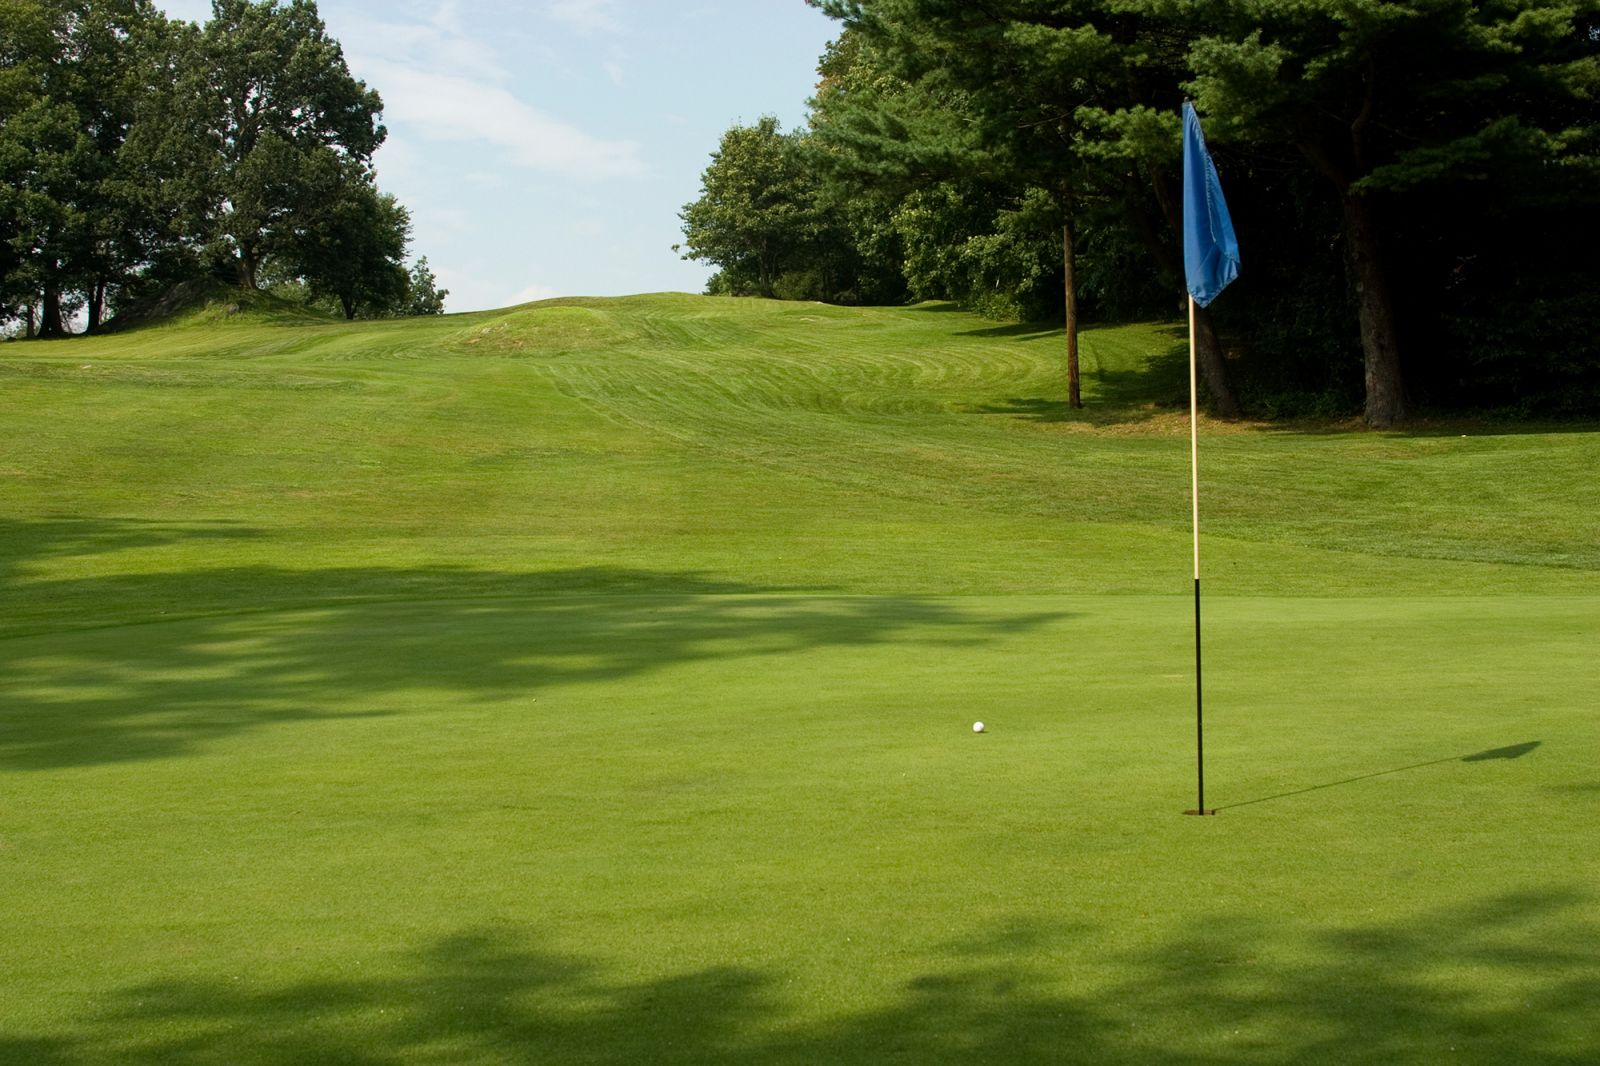 A hole at Pehquenakonck Country Club in North Salem is pictured on a sunny day